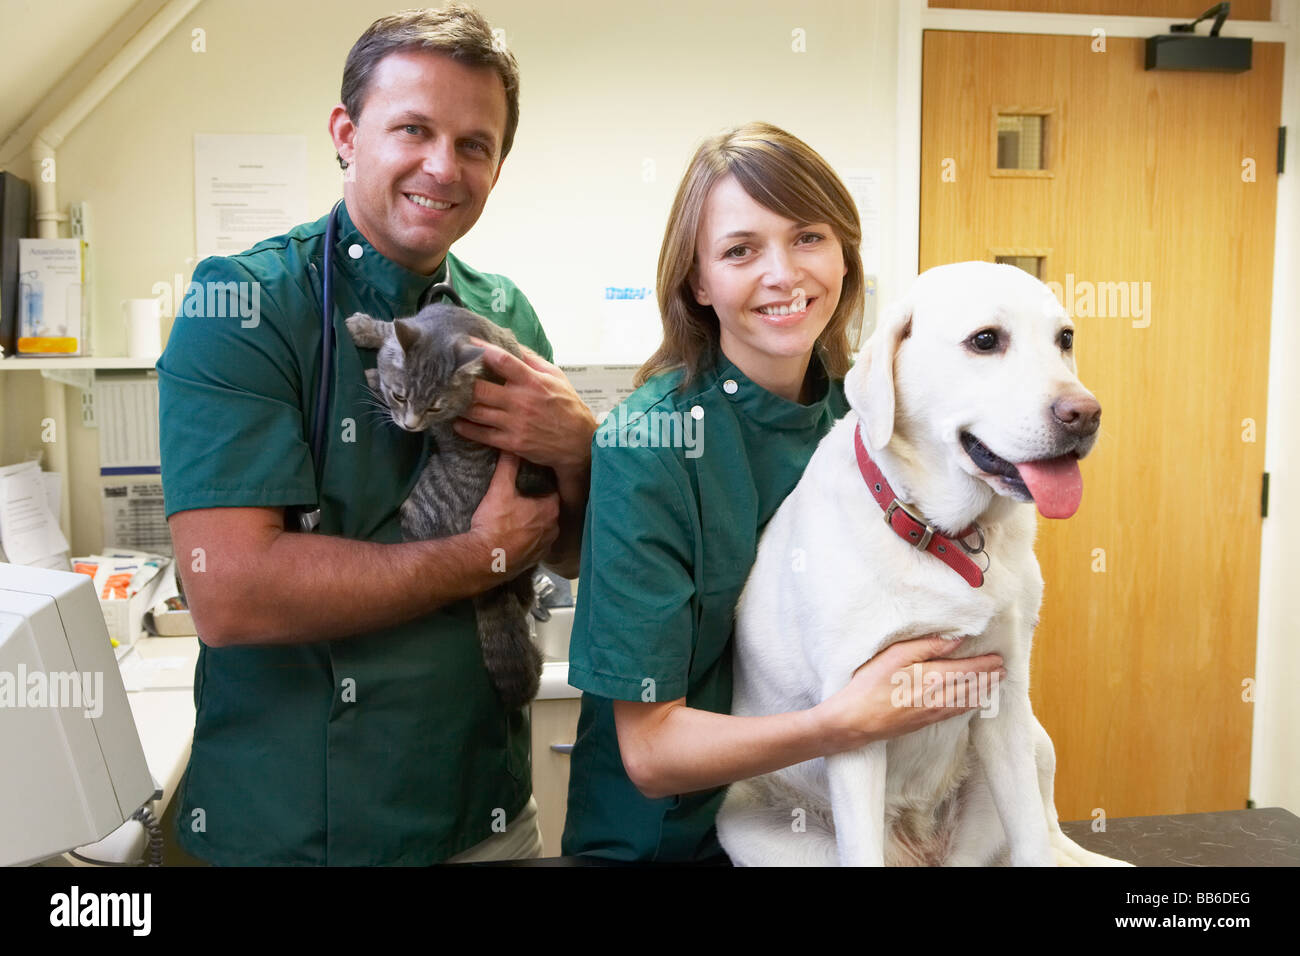 Vetinary Staff With Dog And Cat In Surgery - Stock Image